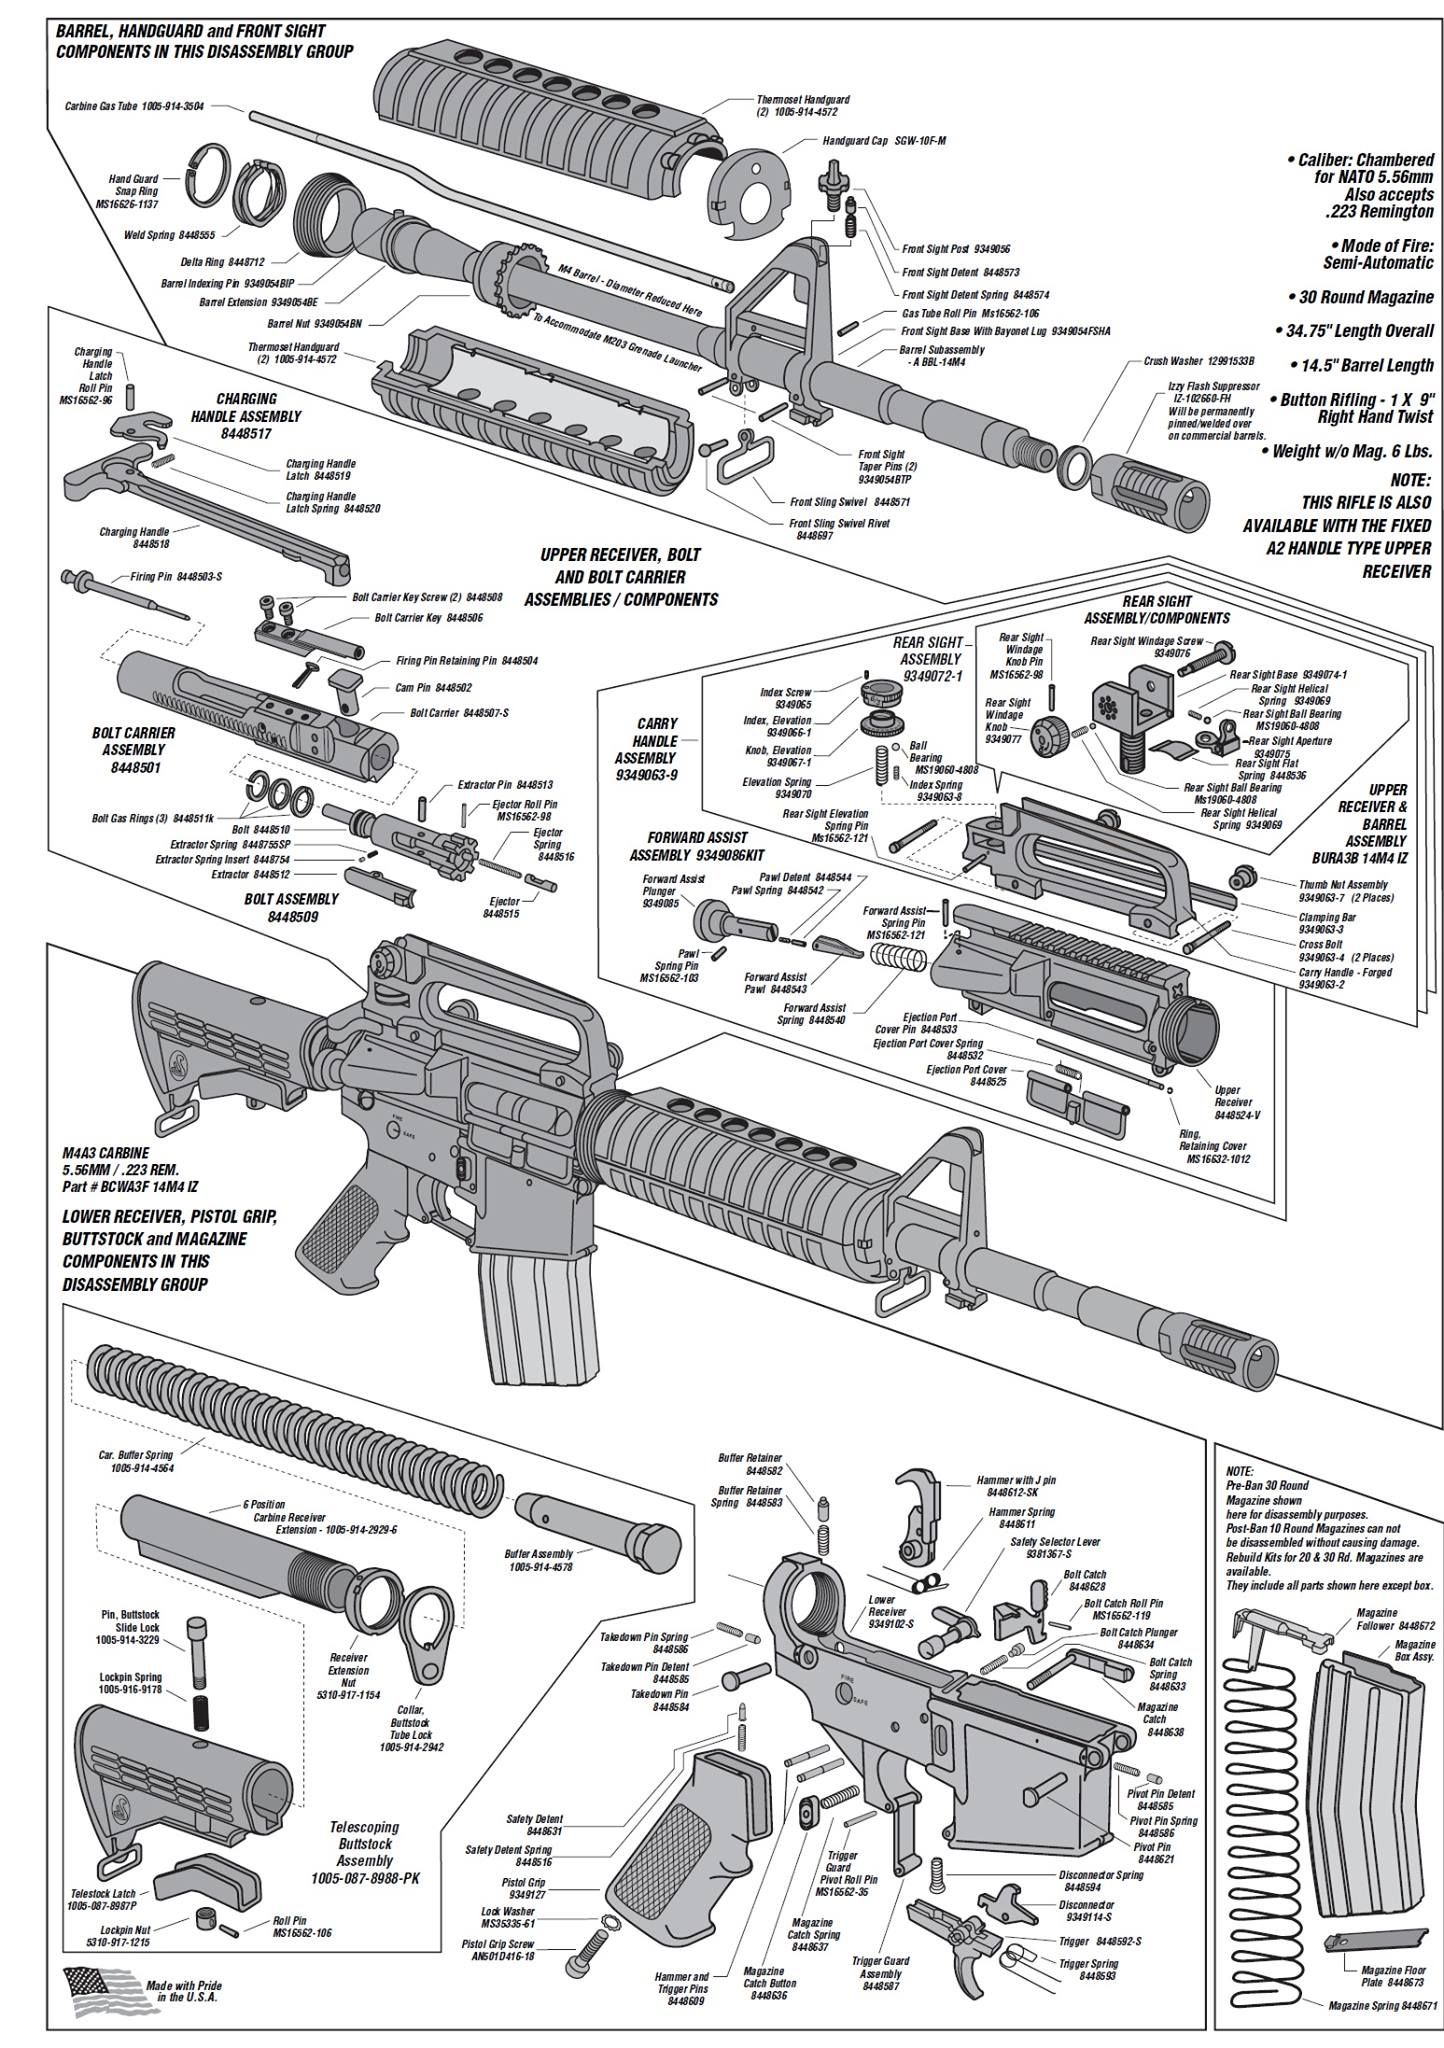 parts breakdown ar 15 [ 1444 x 2048 Pixel ]